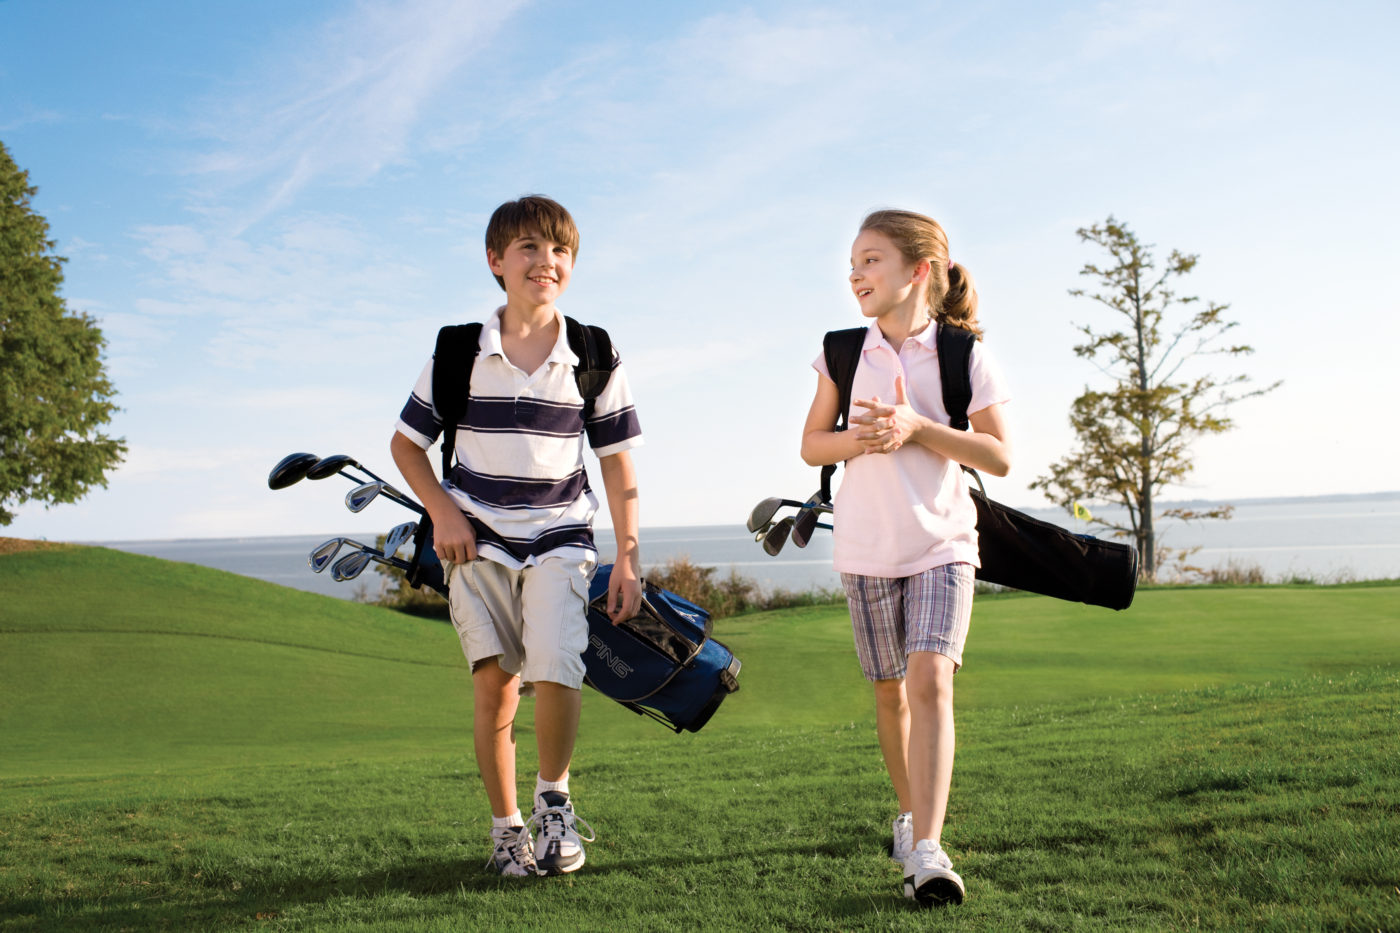 https://secureservercdn.net/104.238.69.231/tbs.145.myftpupload.com/wp-content/uploads/2019/09/Junior-Golf-Camps-e1571601442223.jpg?time=1597113245